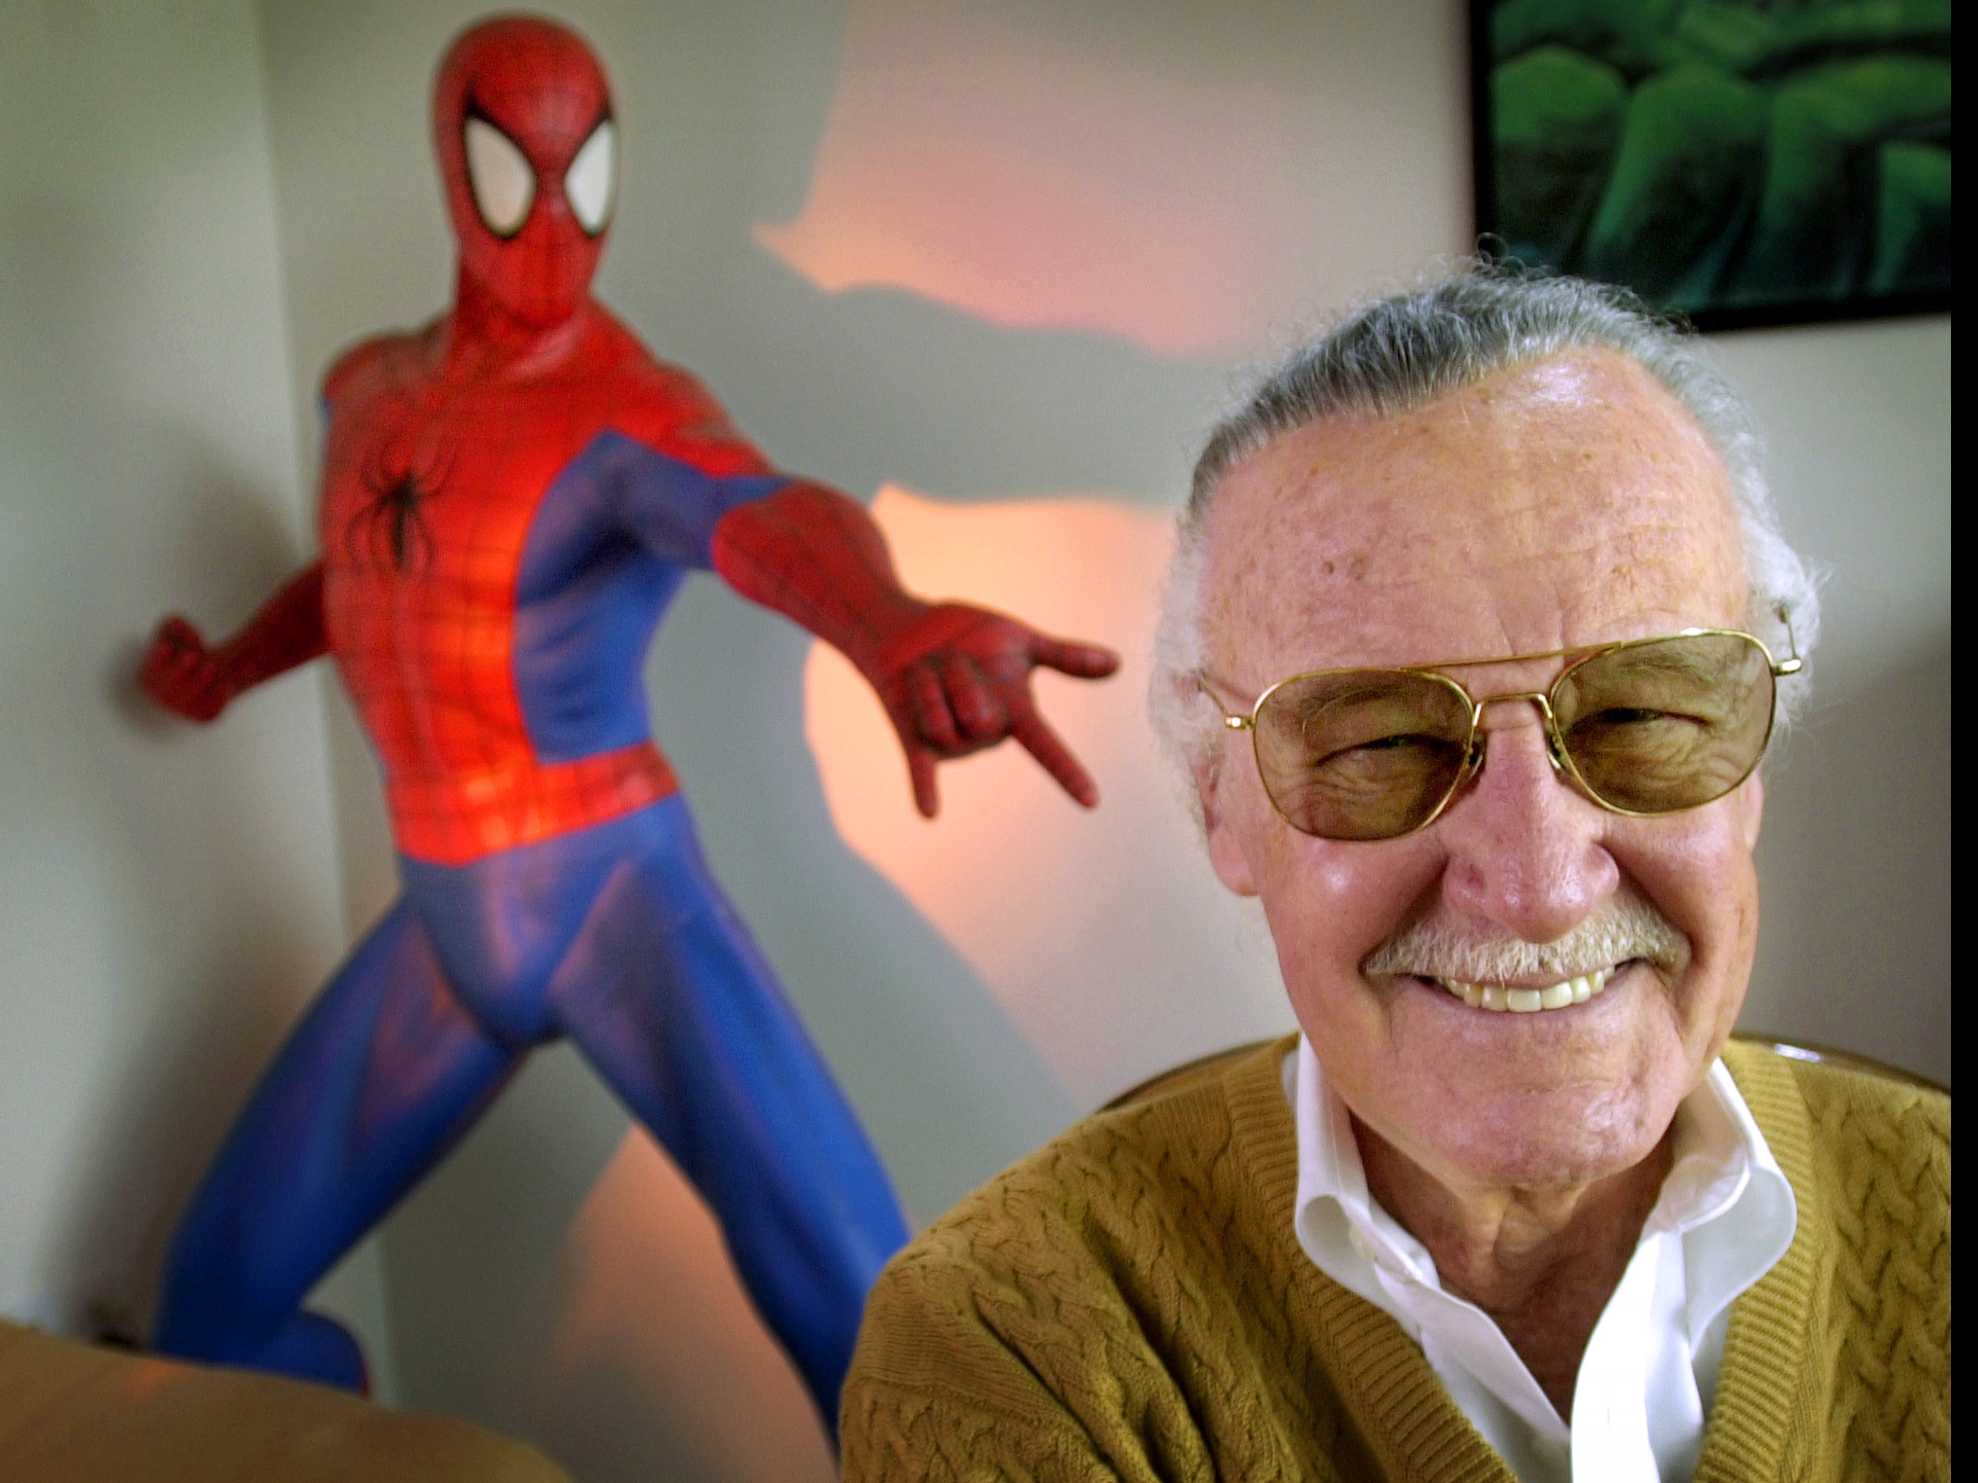 A Universe of Flawed Heroes: Stan Lee was Ahead of His Time